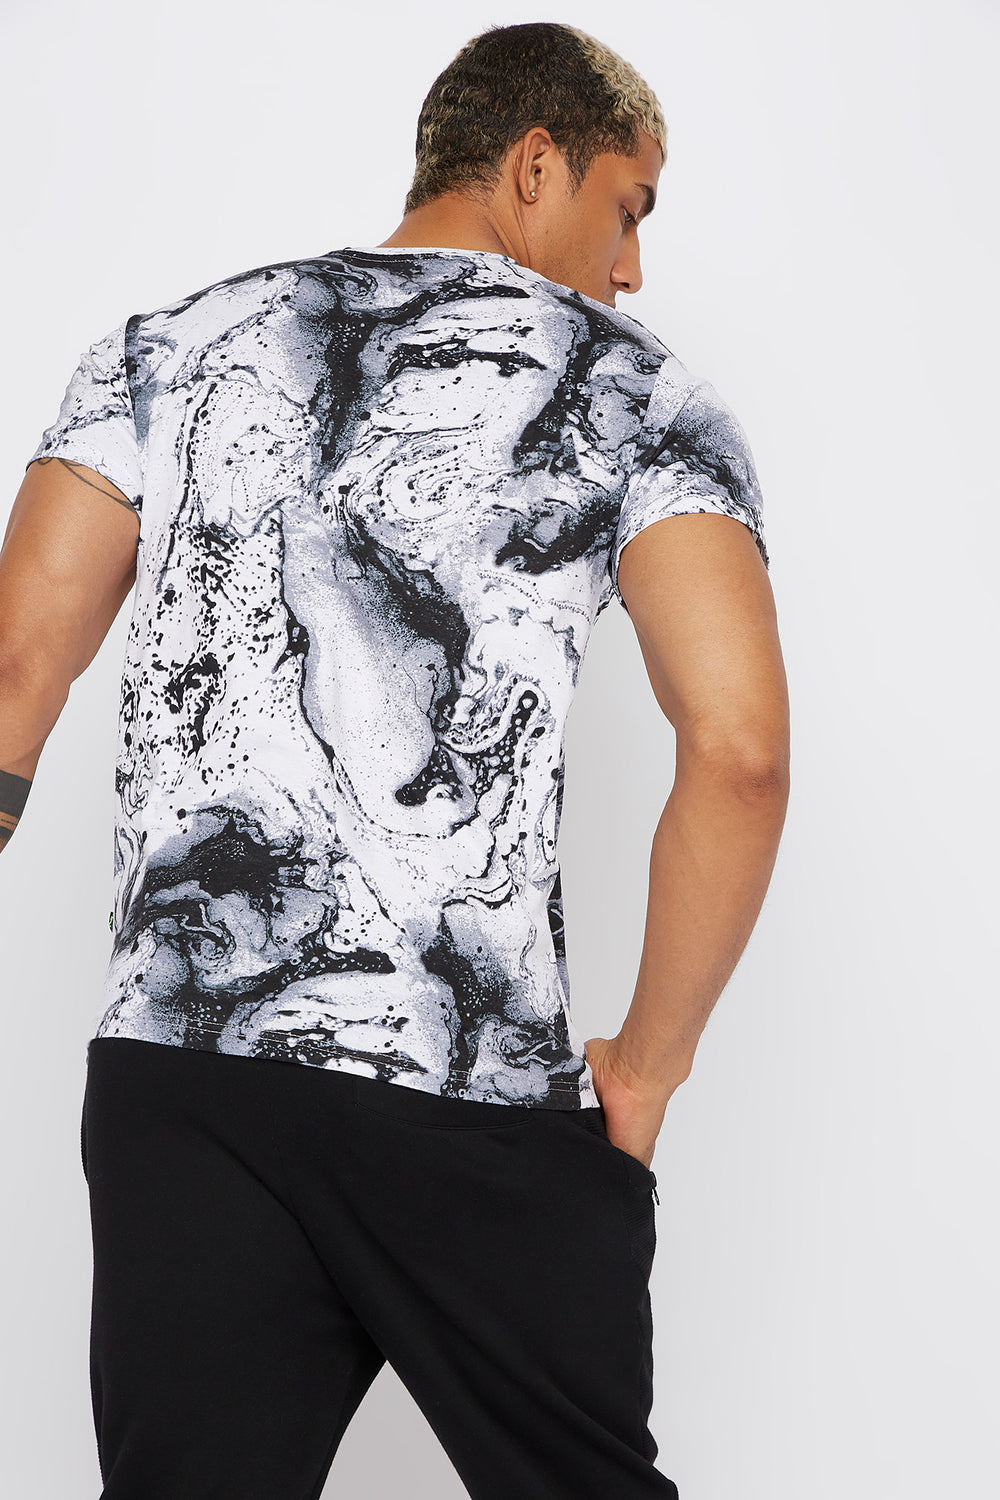 Neon Graphic Marble T-Shirt Black